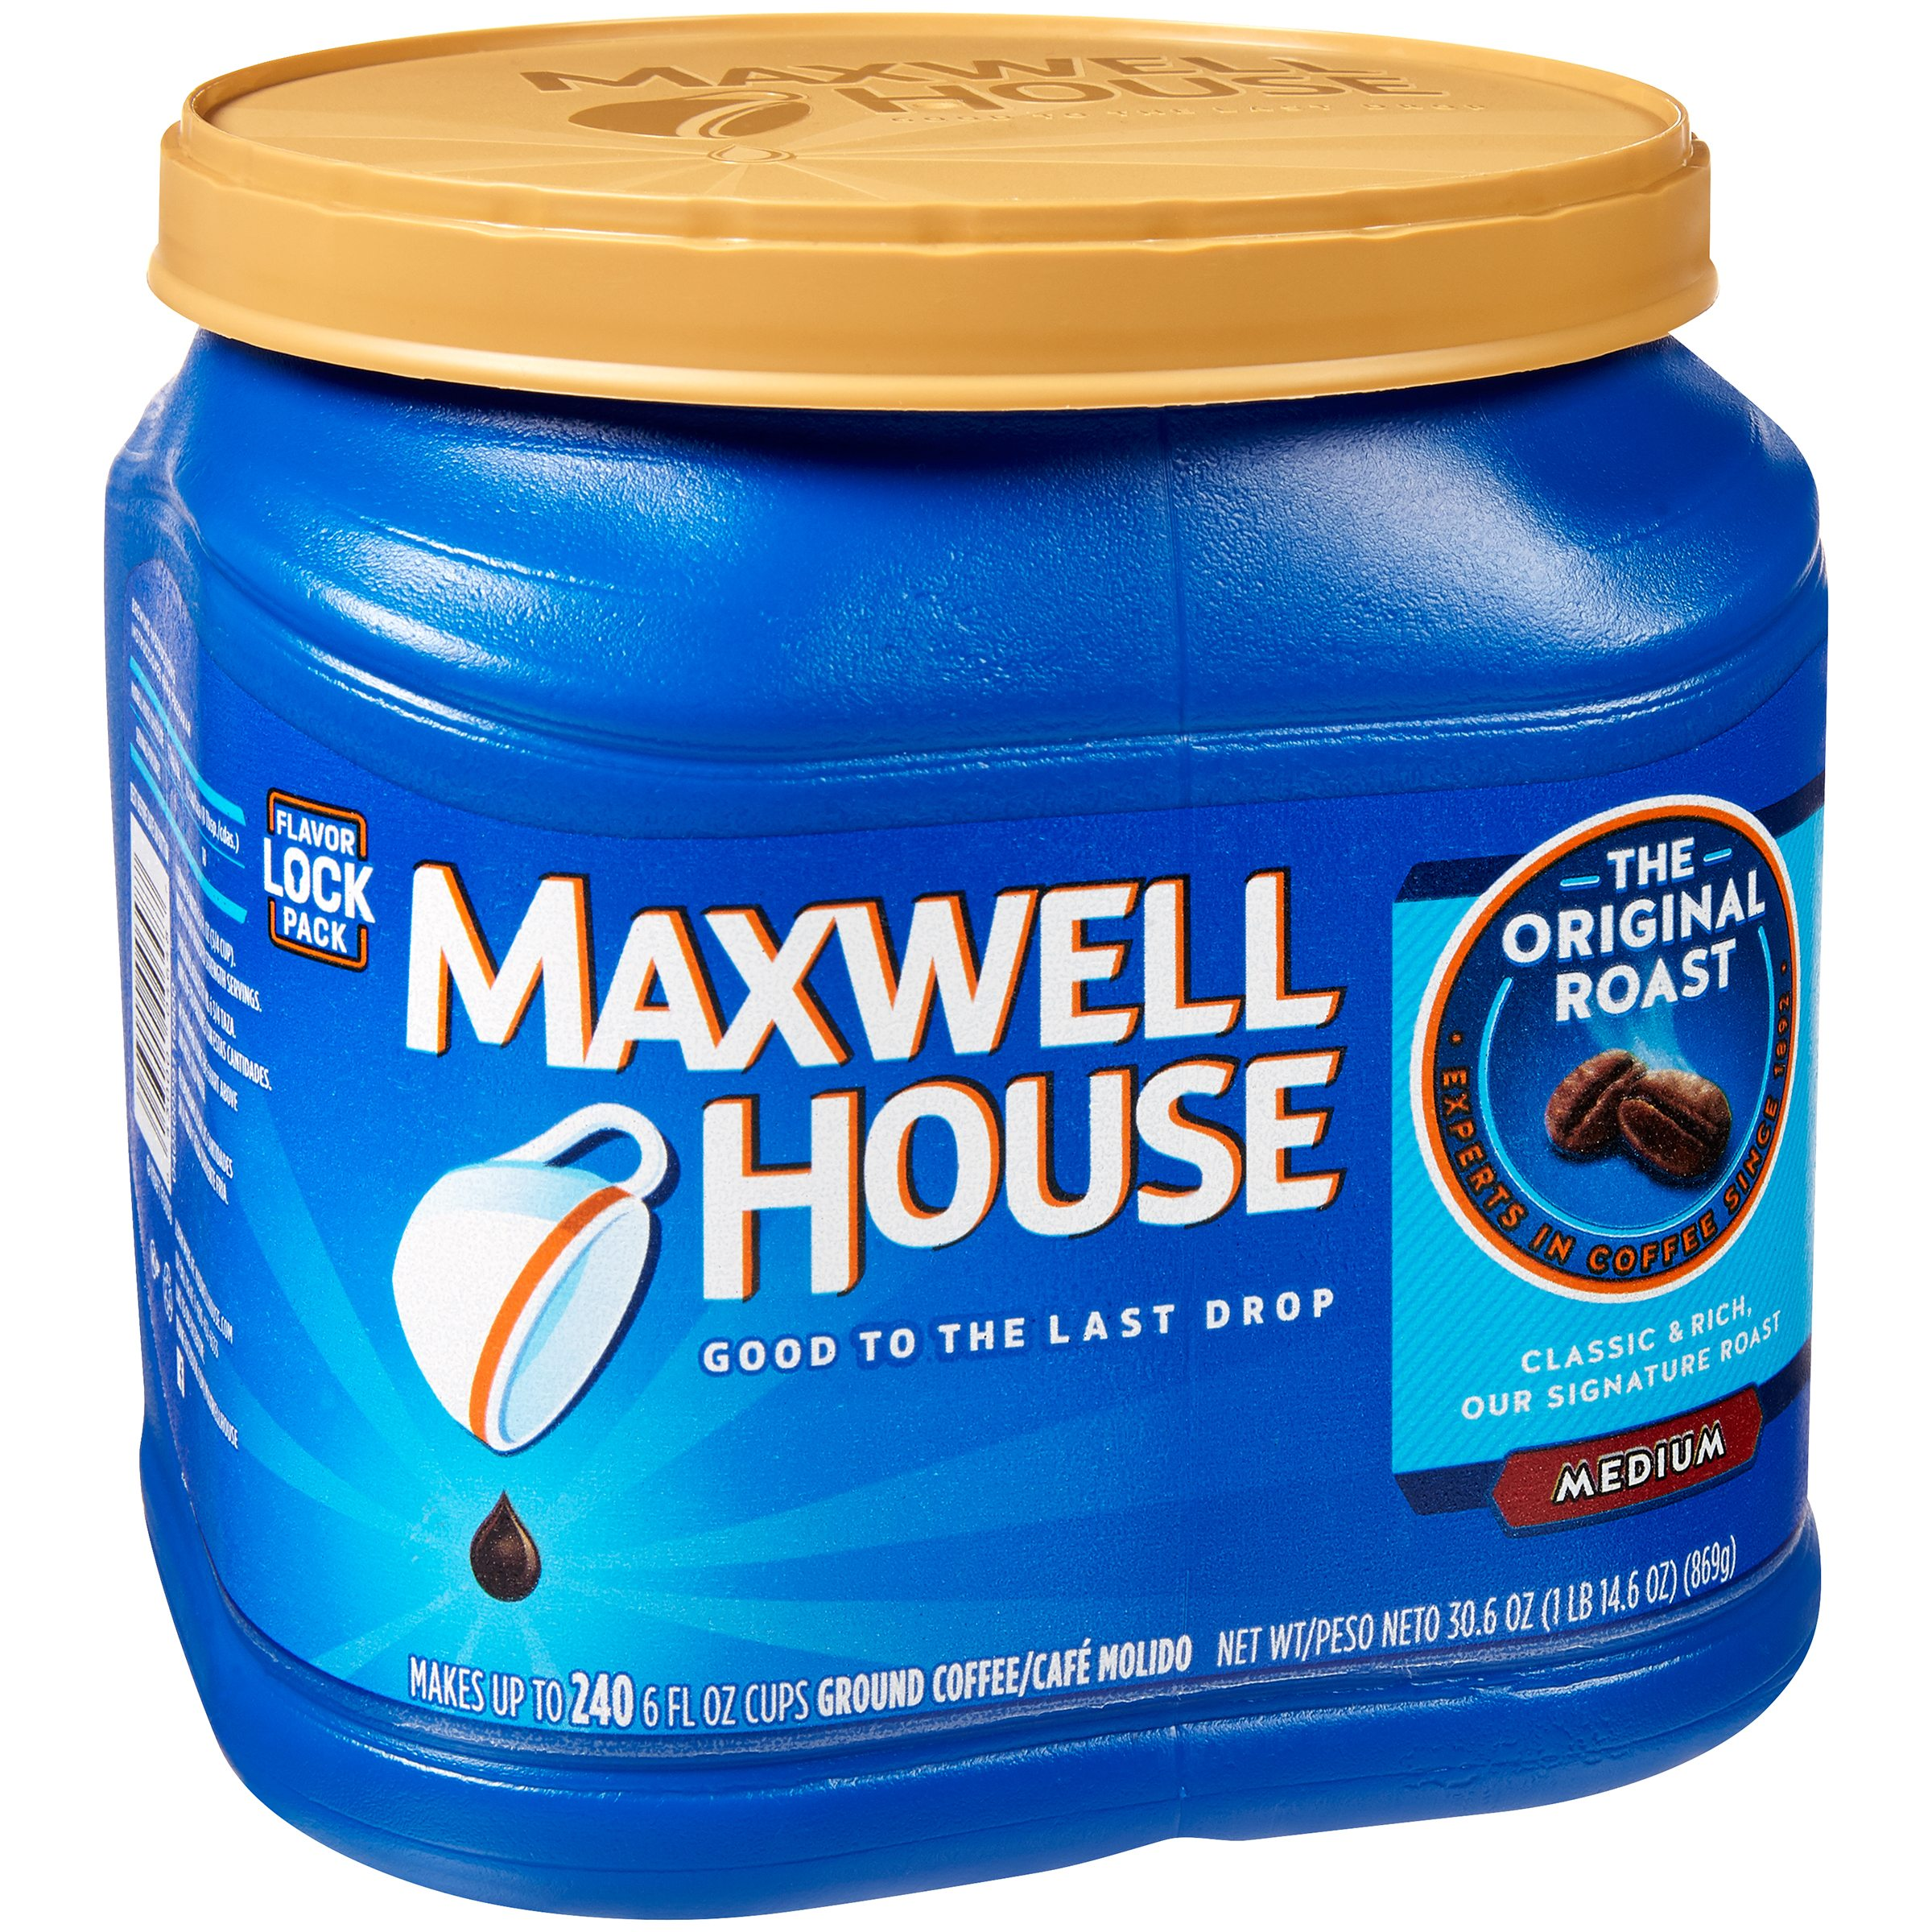 Maxwell House Original Roast Ground Coffee 30.6 oz. Tub